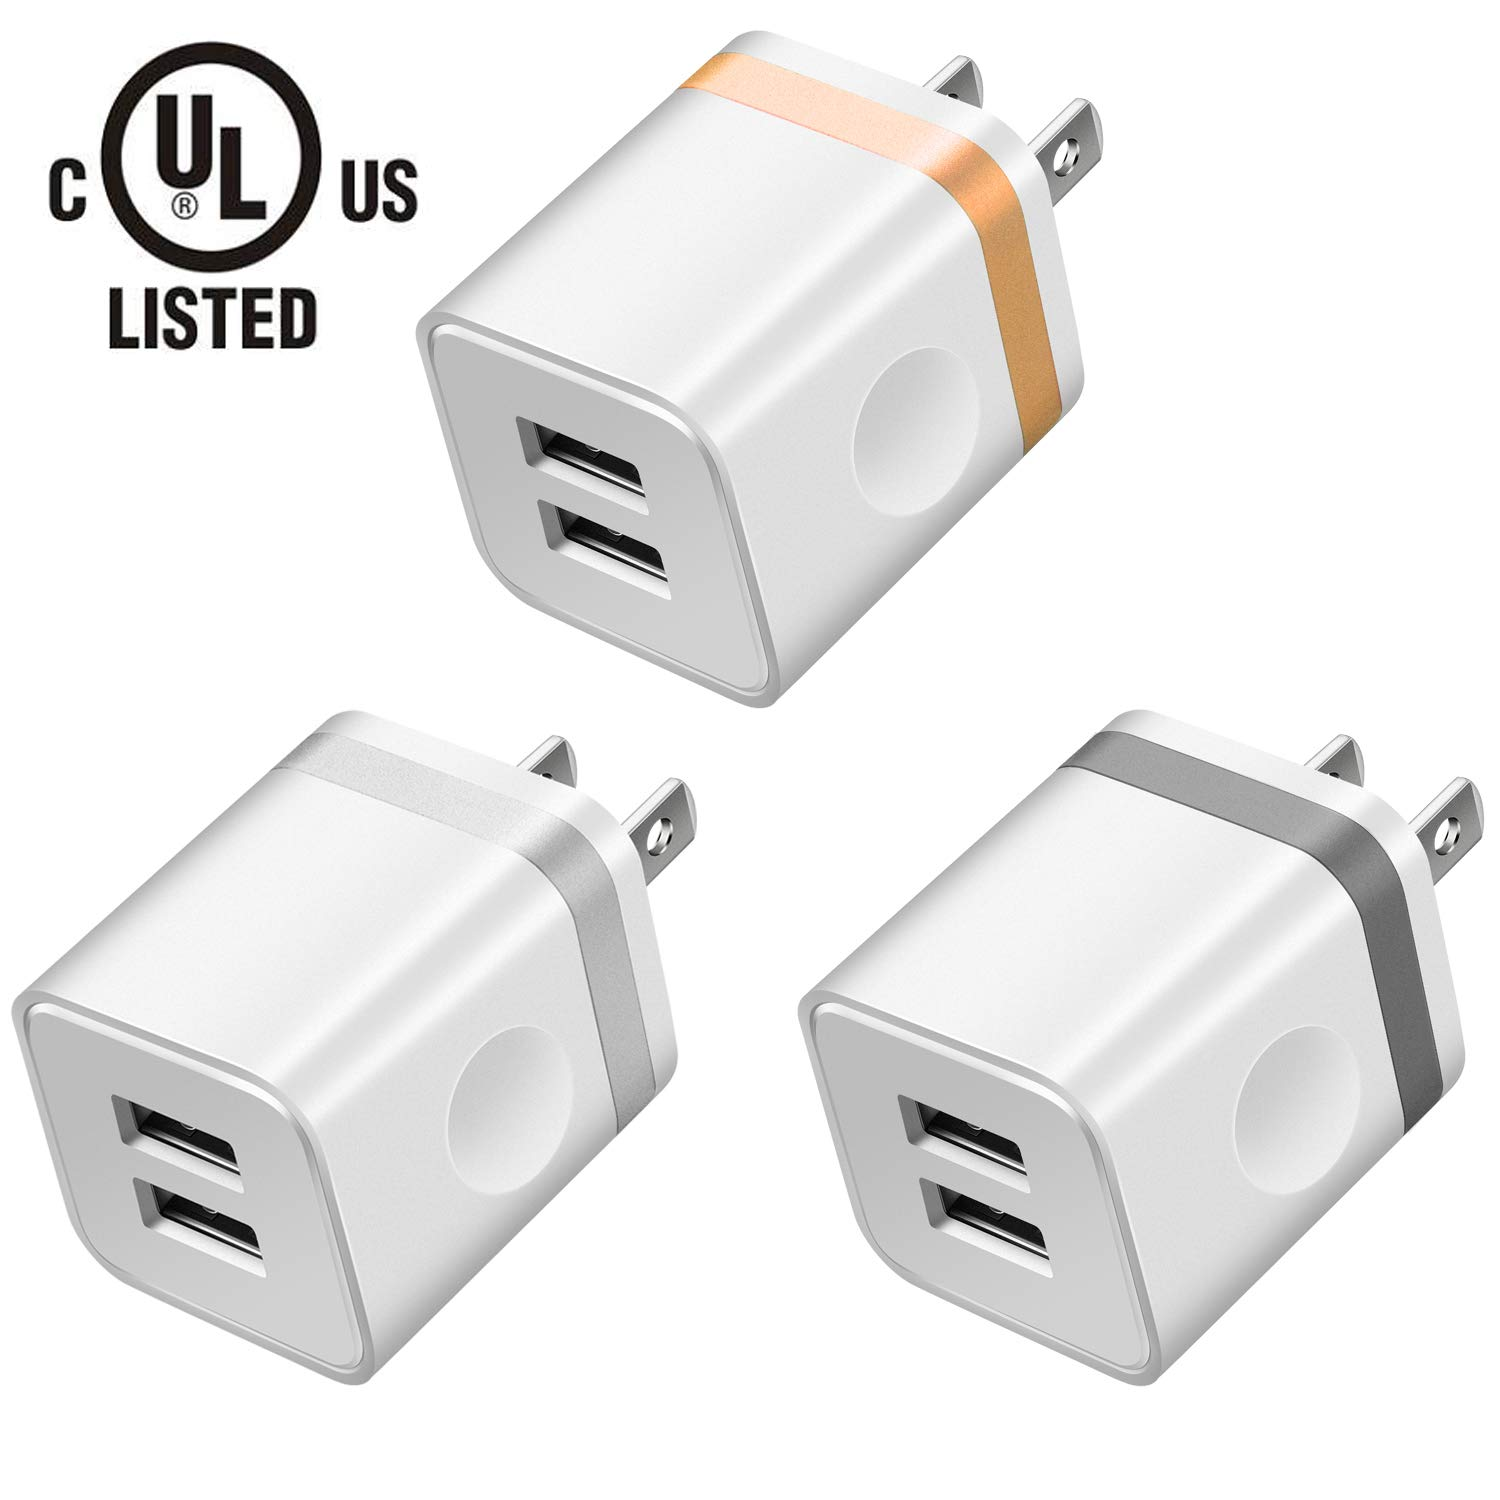 LEEKOTECH USB Wall Charger, [UL Certified] 3-Pack 2.1A USB Plug Dual Port Power Adapter Charging Block Cube for iPhone X 8 7 6 Plus 4 5S, iPad, Samsung Galaxy S5 S6 S7 Edge, Android Cell Phone